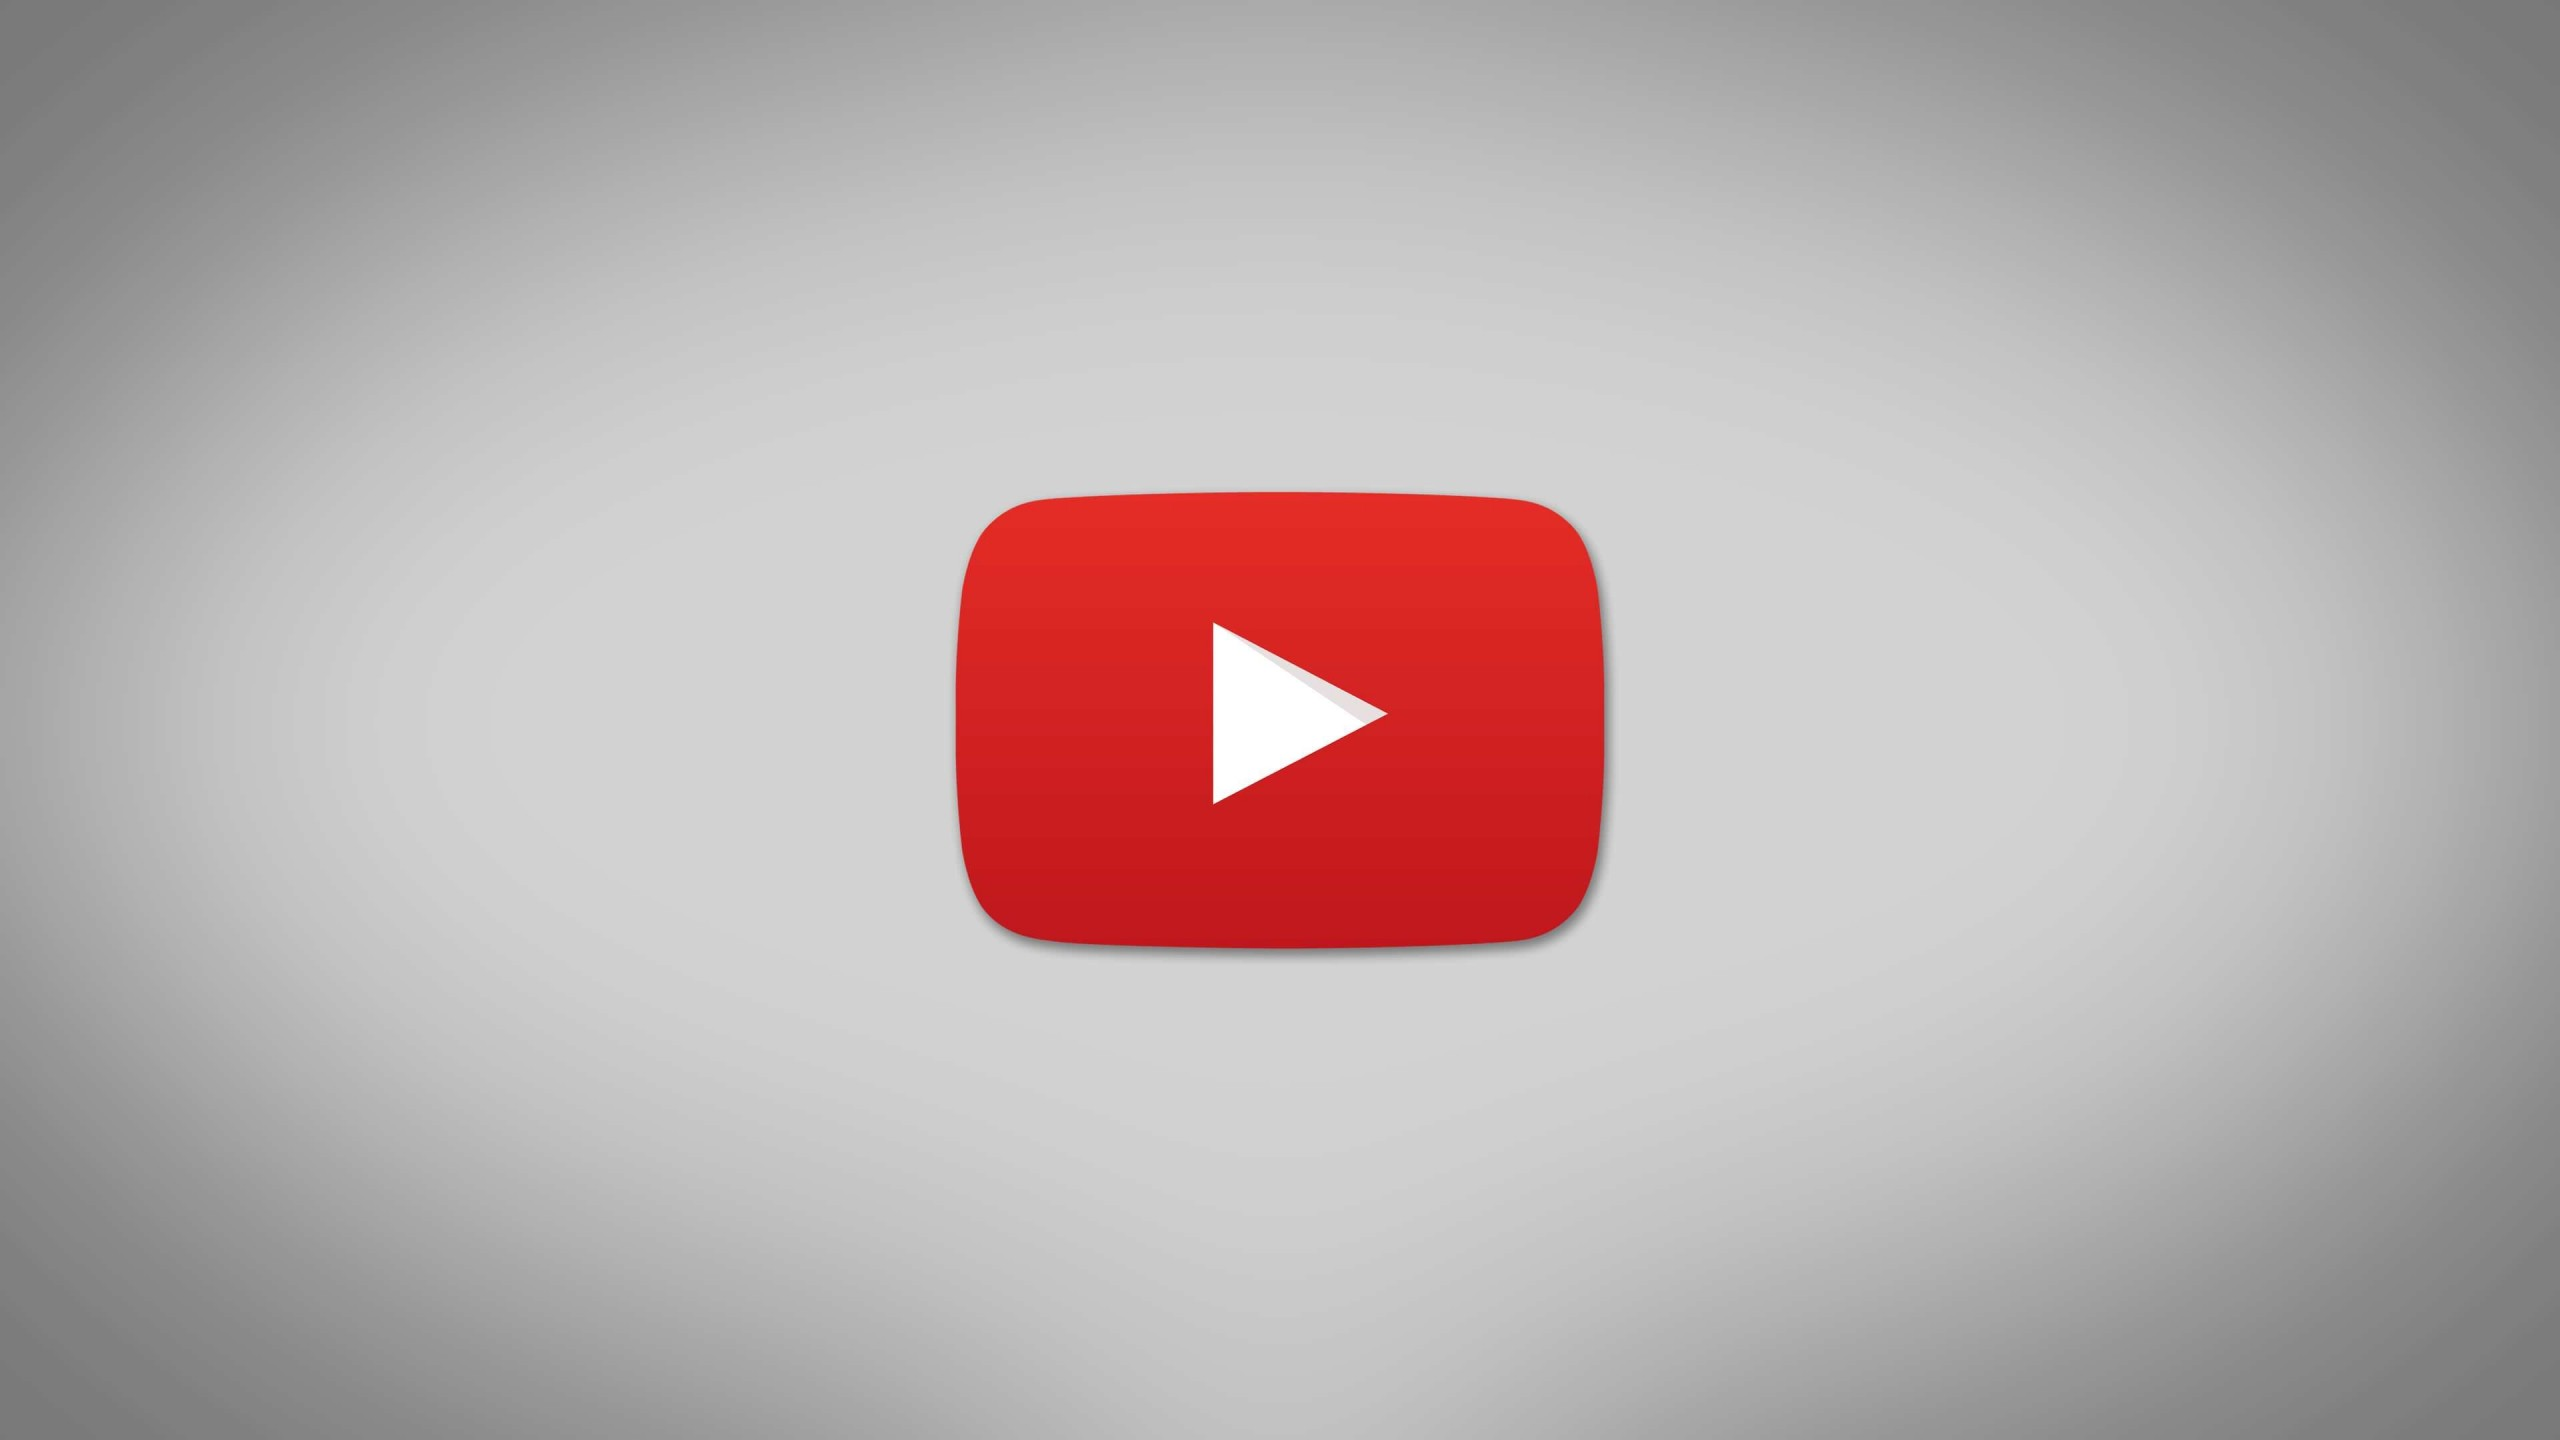 youtube logo hd wallpaper for 2560x1440 screens. Black Bedroom Furniture Sets. Home Design Ideas